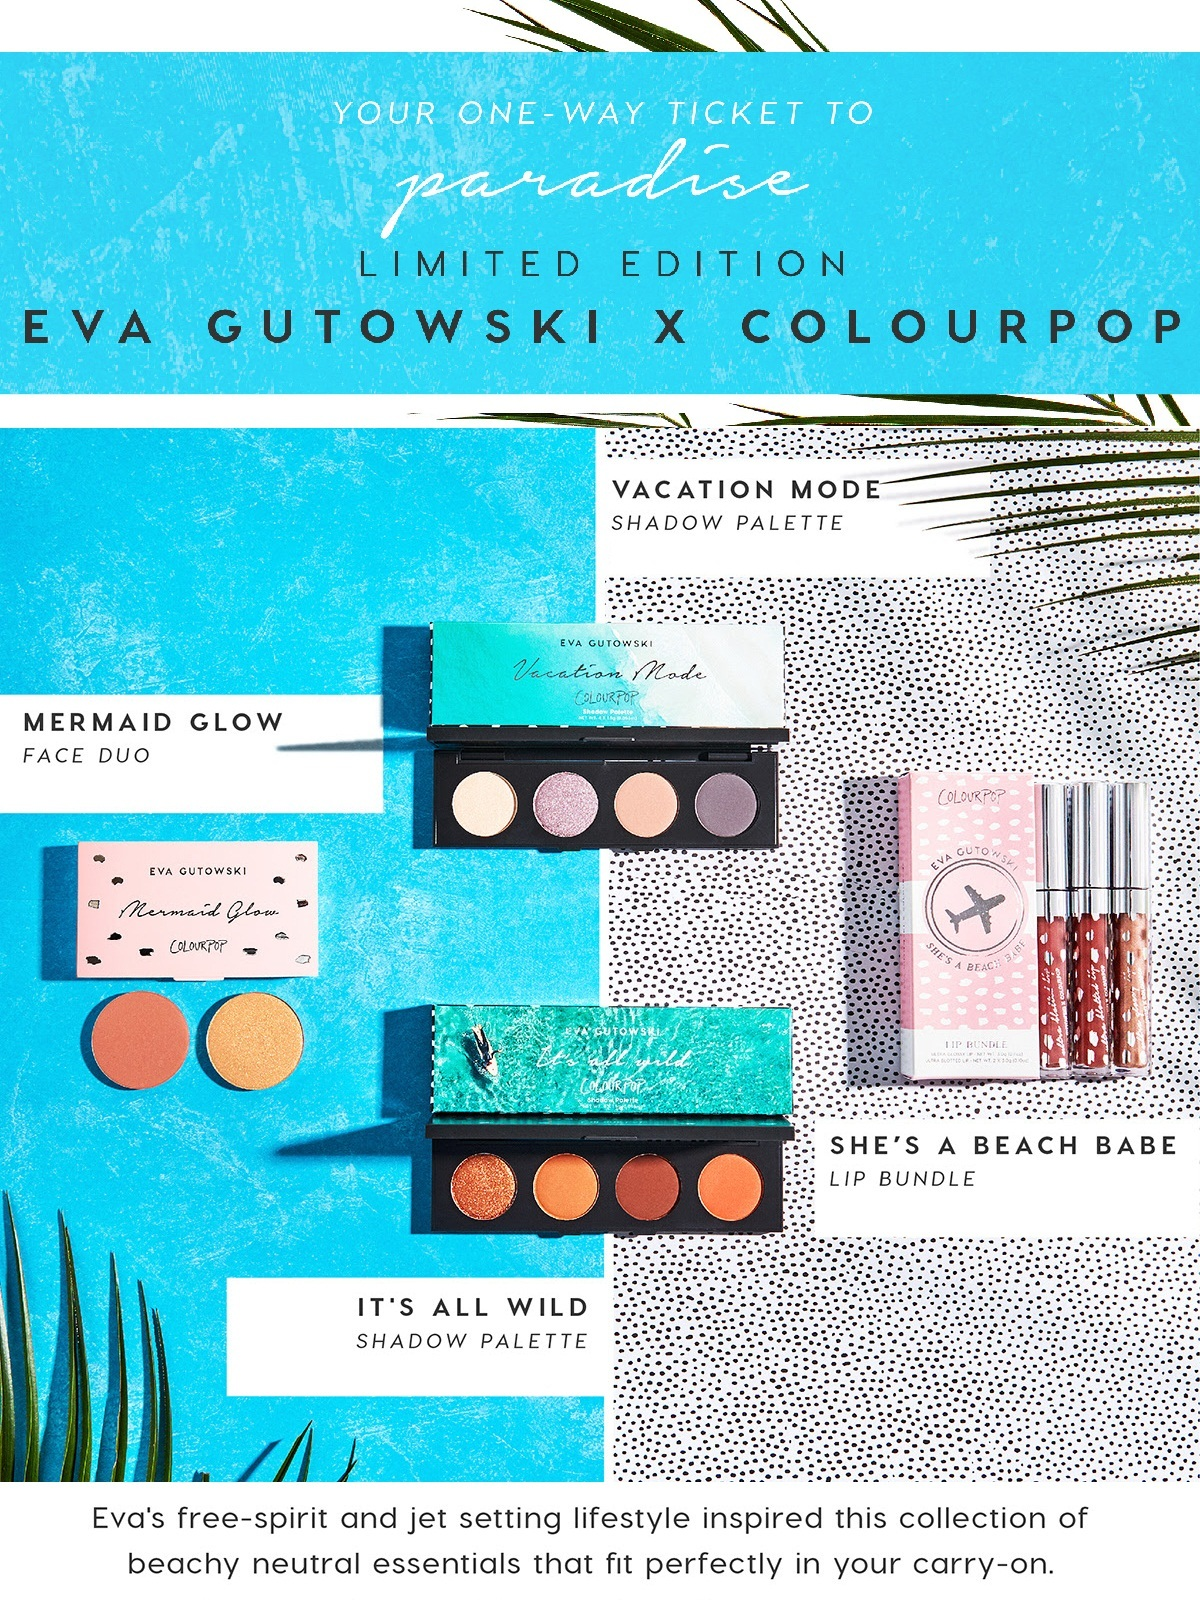 Colourpop vacation mode.jpg